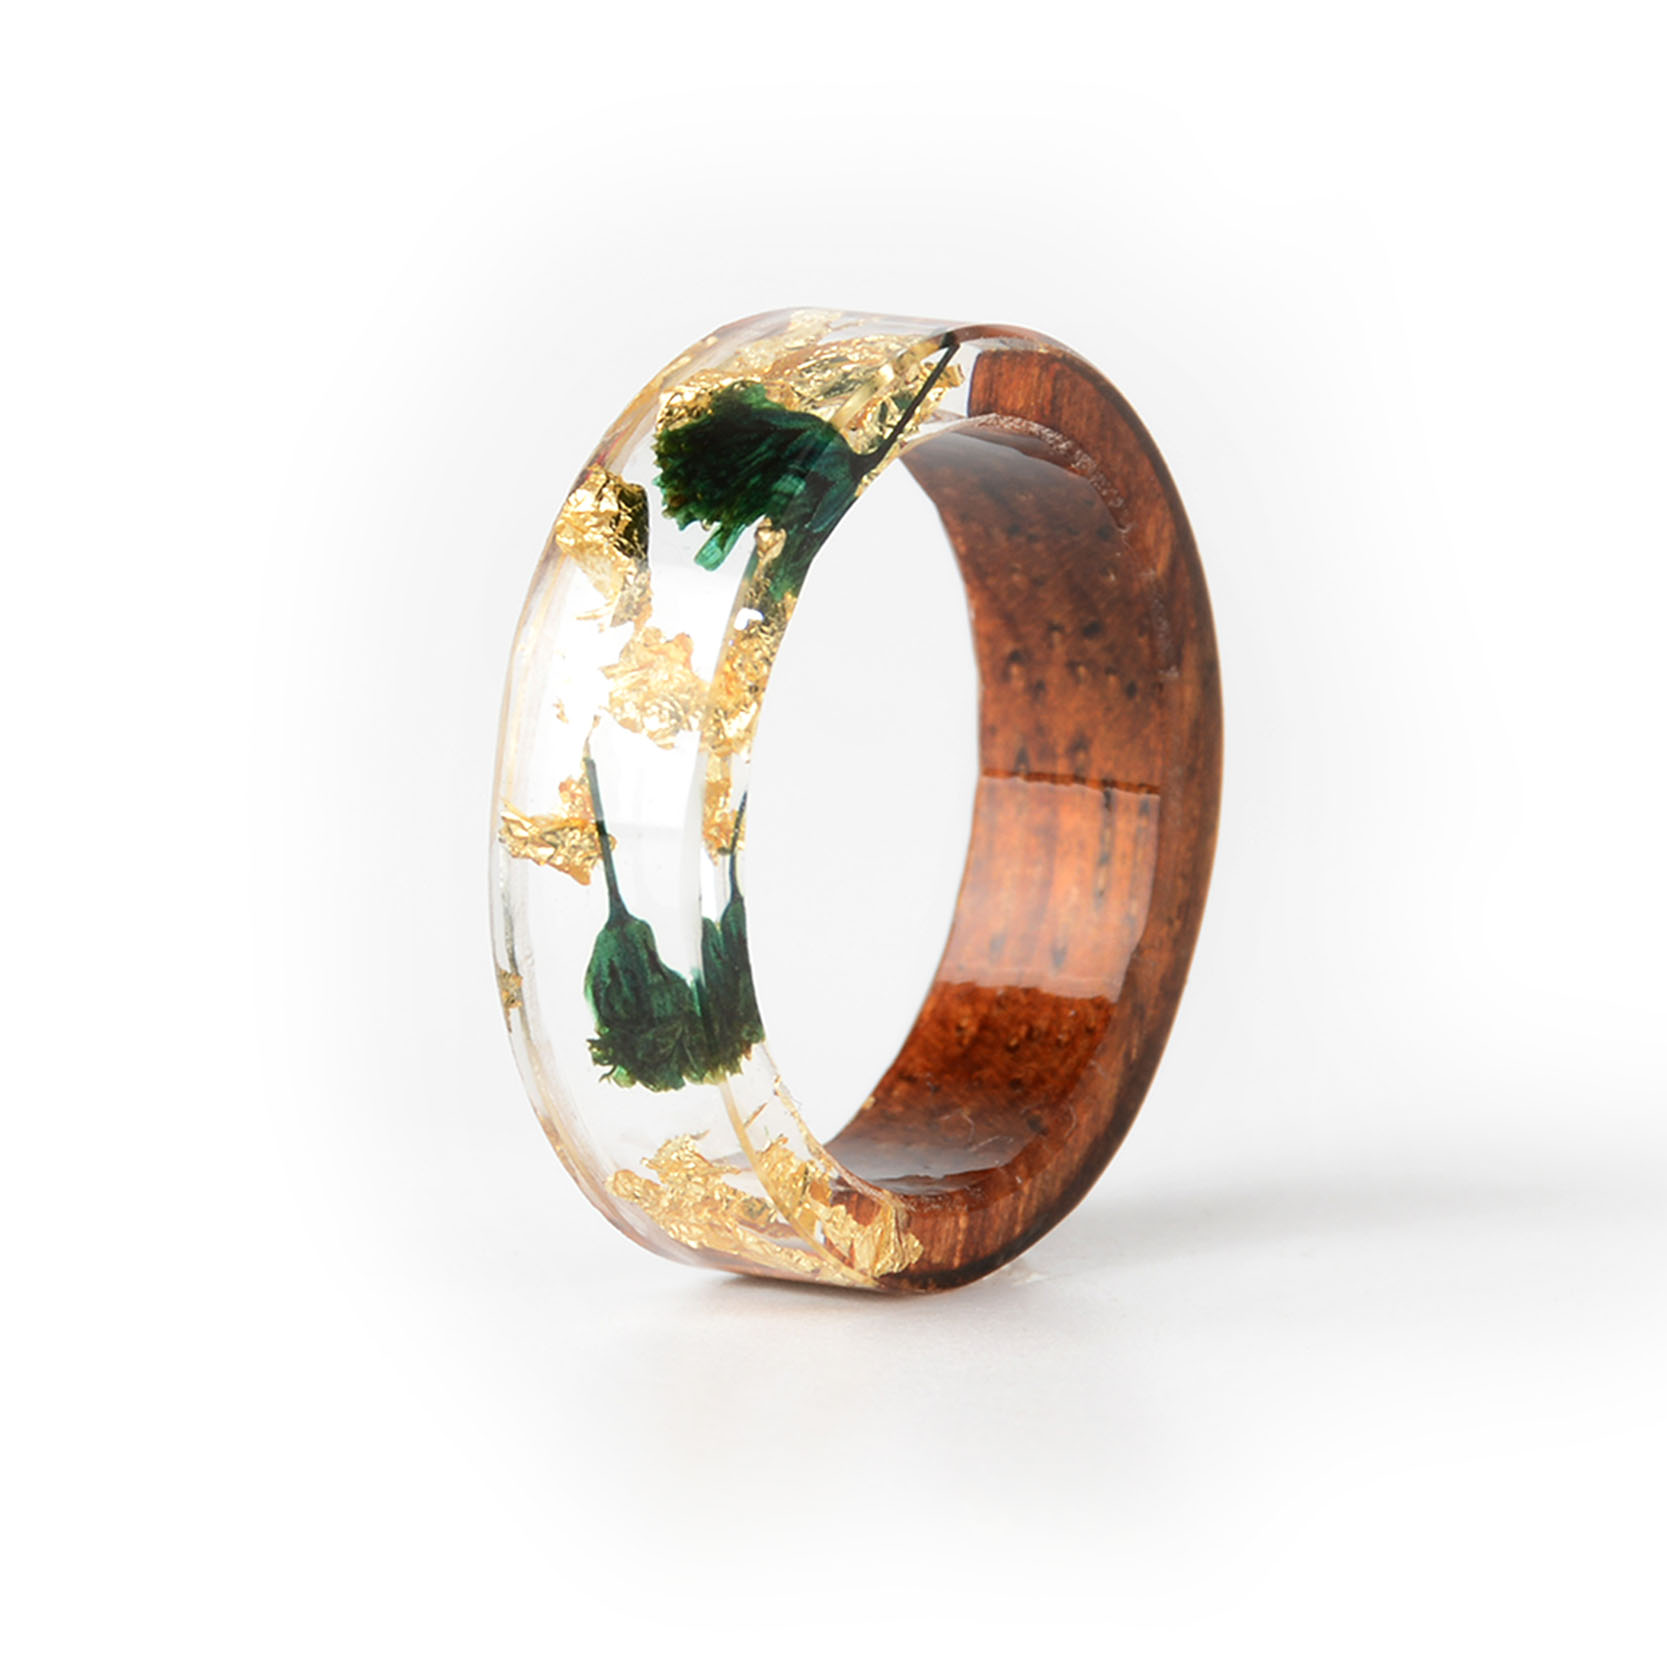 Handmade Wood Resin Ring Many Styles 26